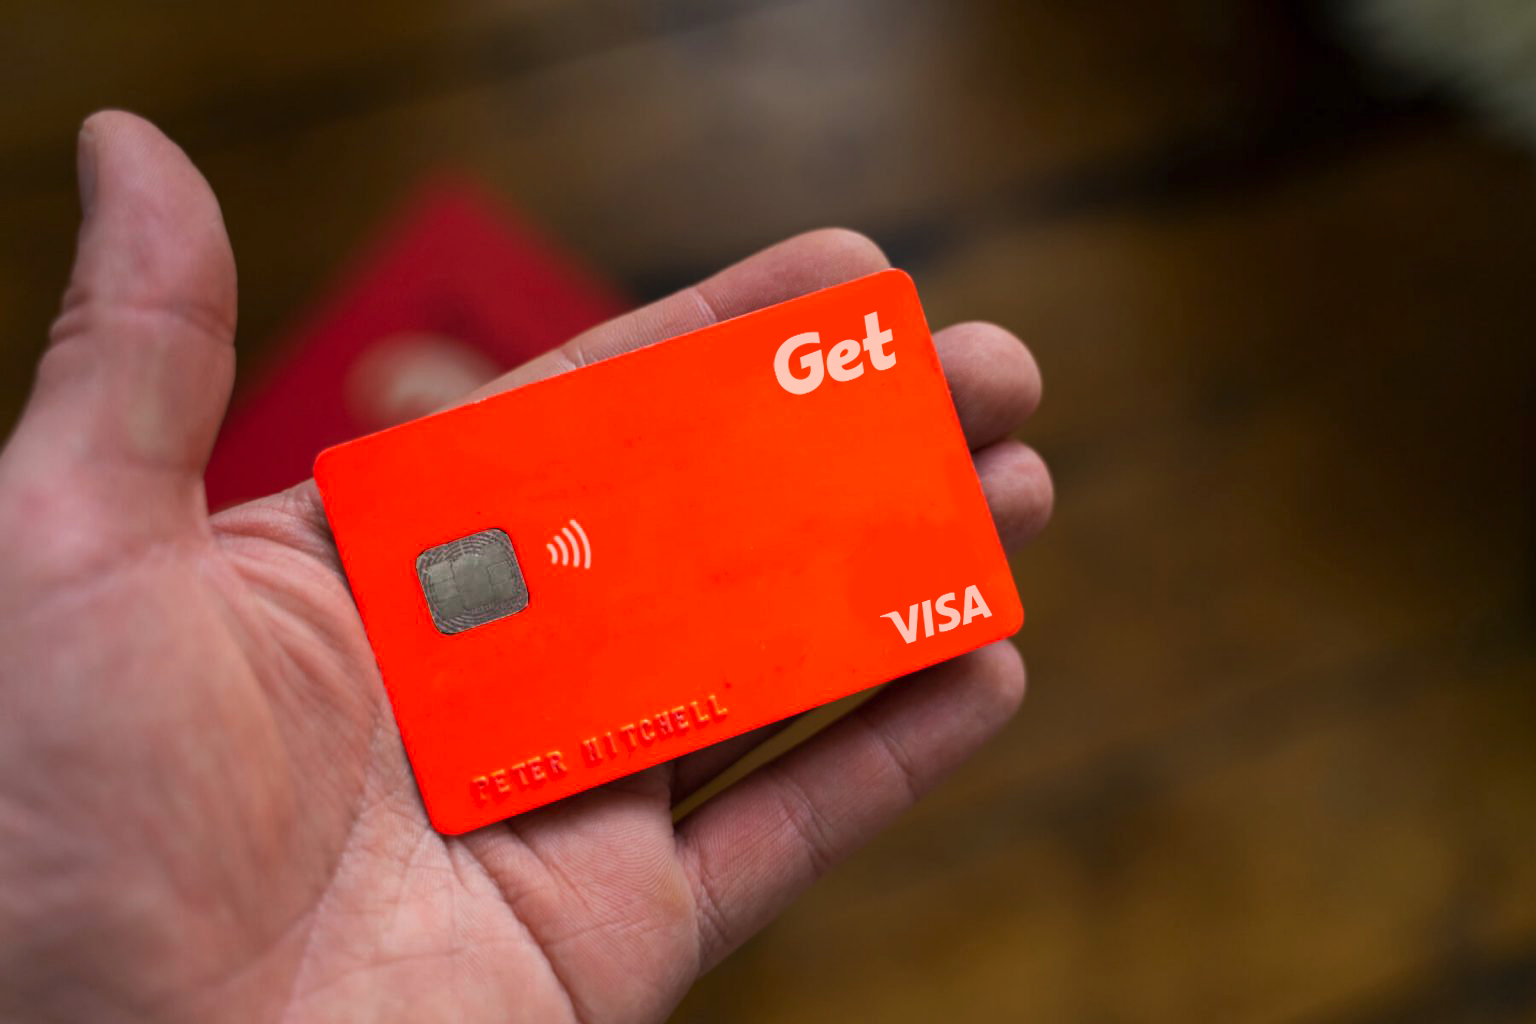 Get is bringing neobanking to Asia's financial newbies